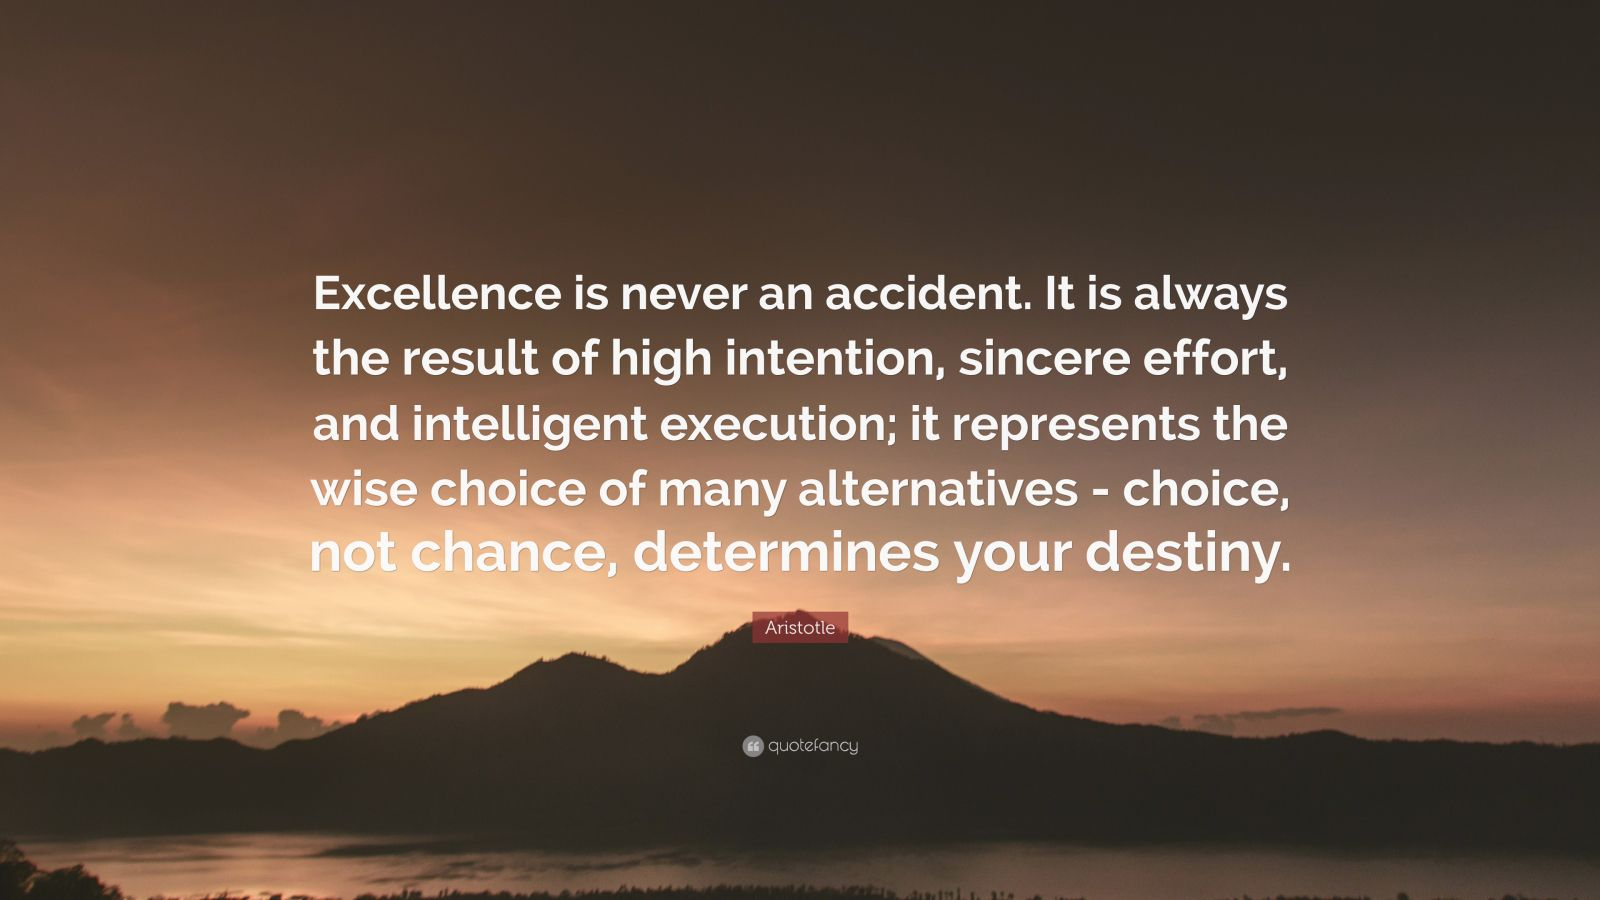 aristotle and the life of excellence Aristotle applied the same patient and this must be an activity of the soul that expresses genuine virtue or excellence (nic ethics i 7) thus, human beings should aim at a life in full conformity with their rational natures.